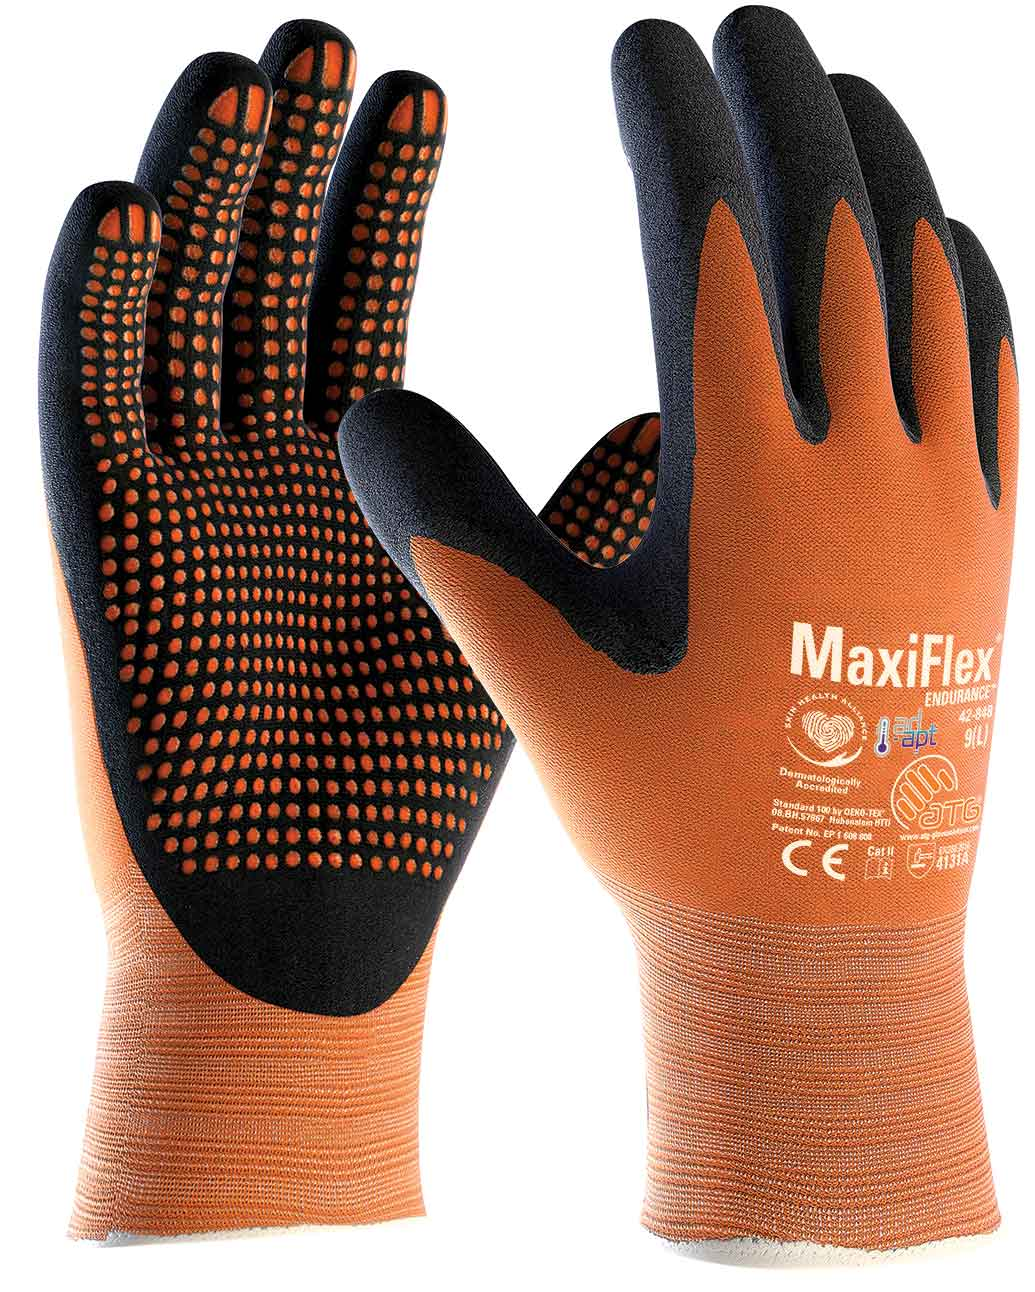 42-848 MaxiFlex® Endurance™ with AD-APT™ Image